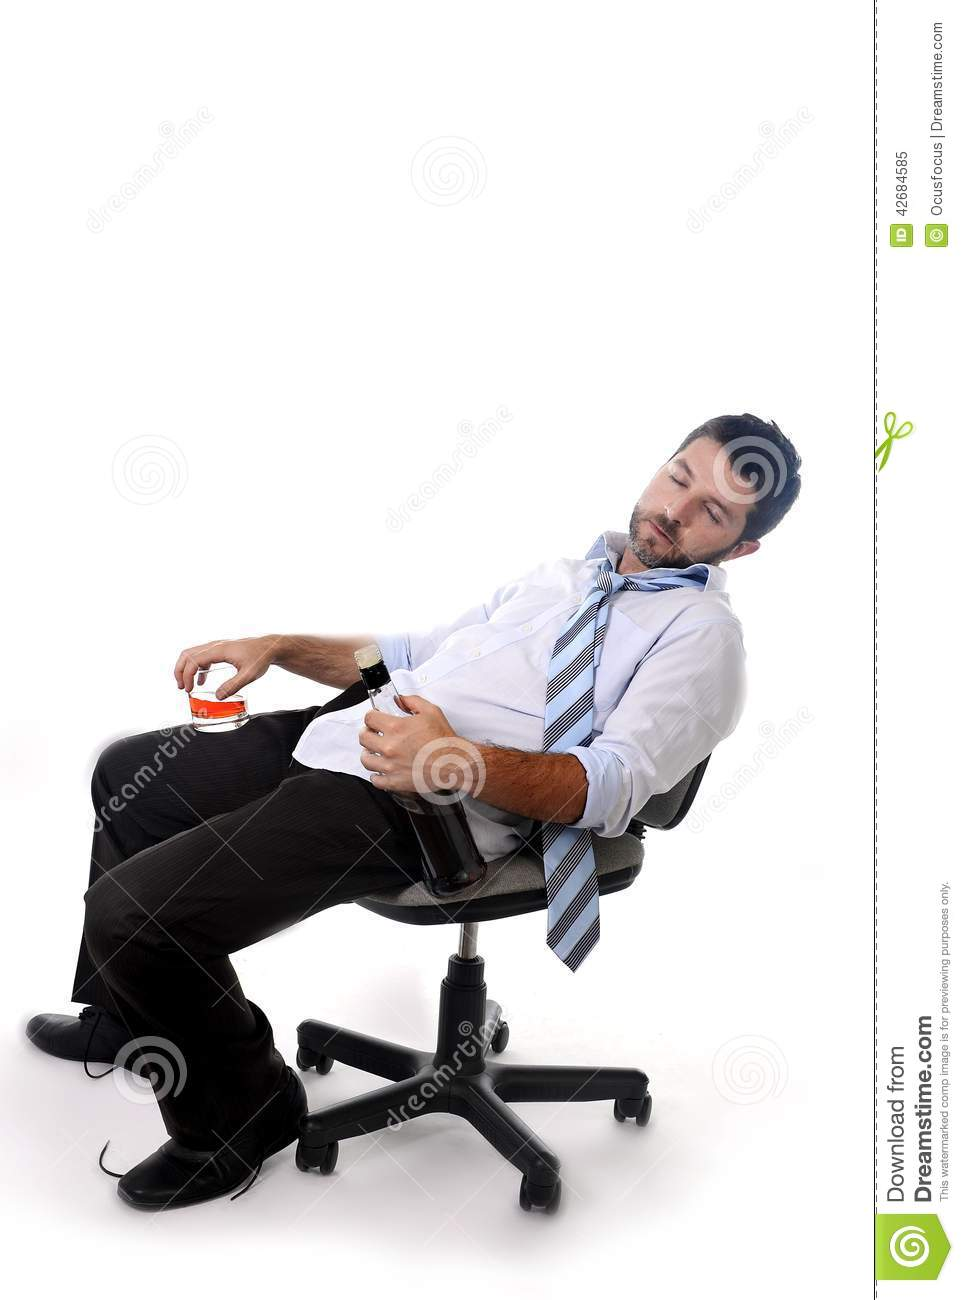 leaning back in chair